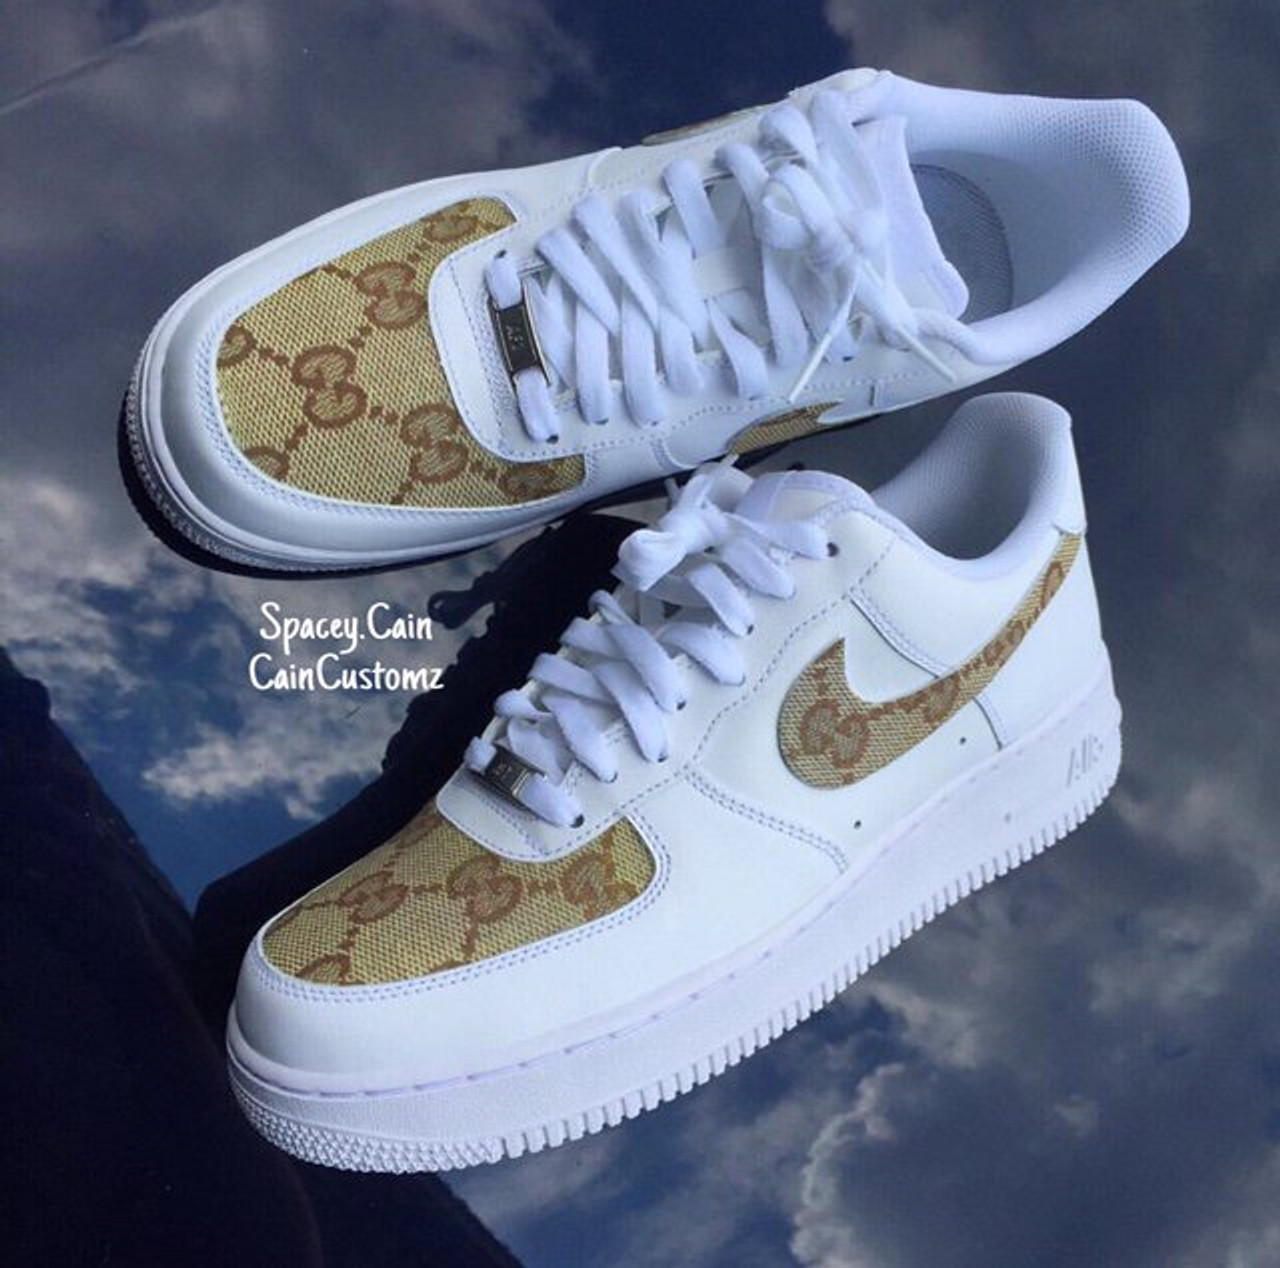 Beige Designer Air Force One Lows Men Gs Cain Customz